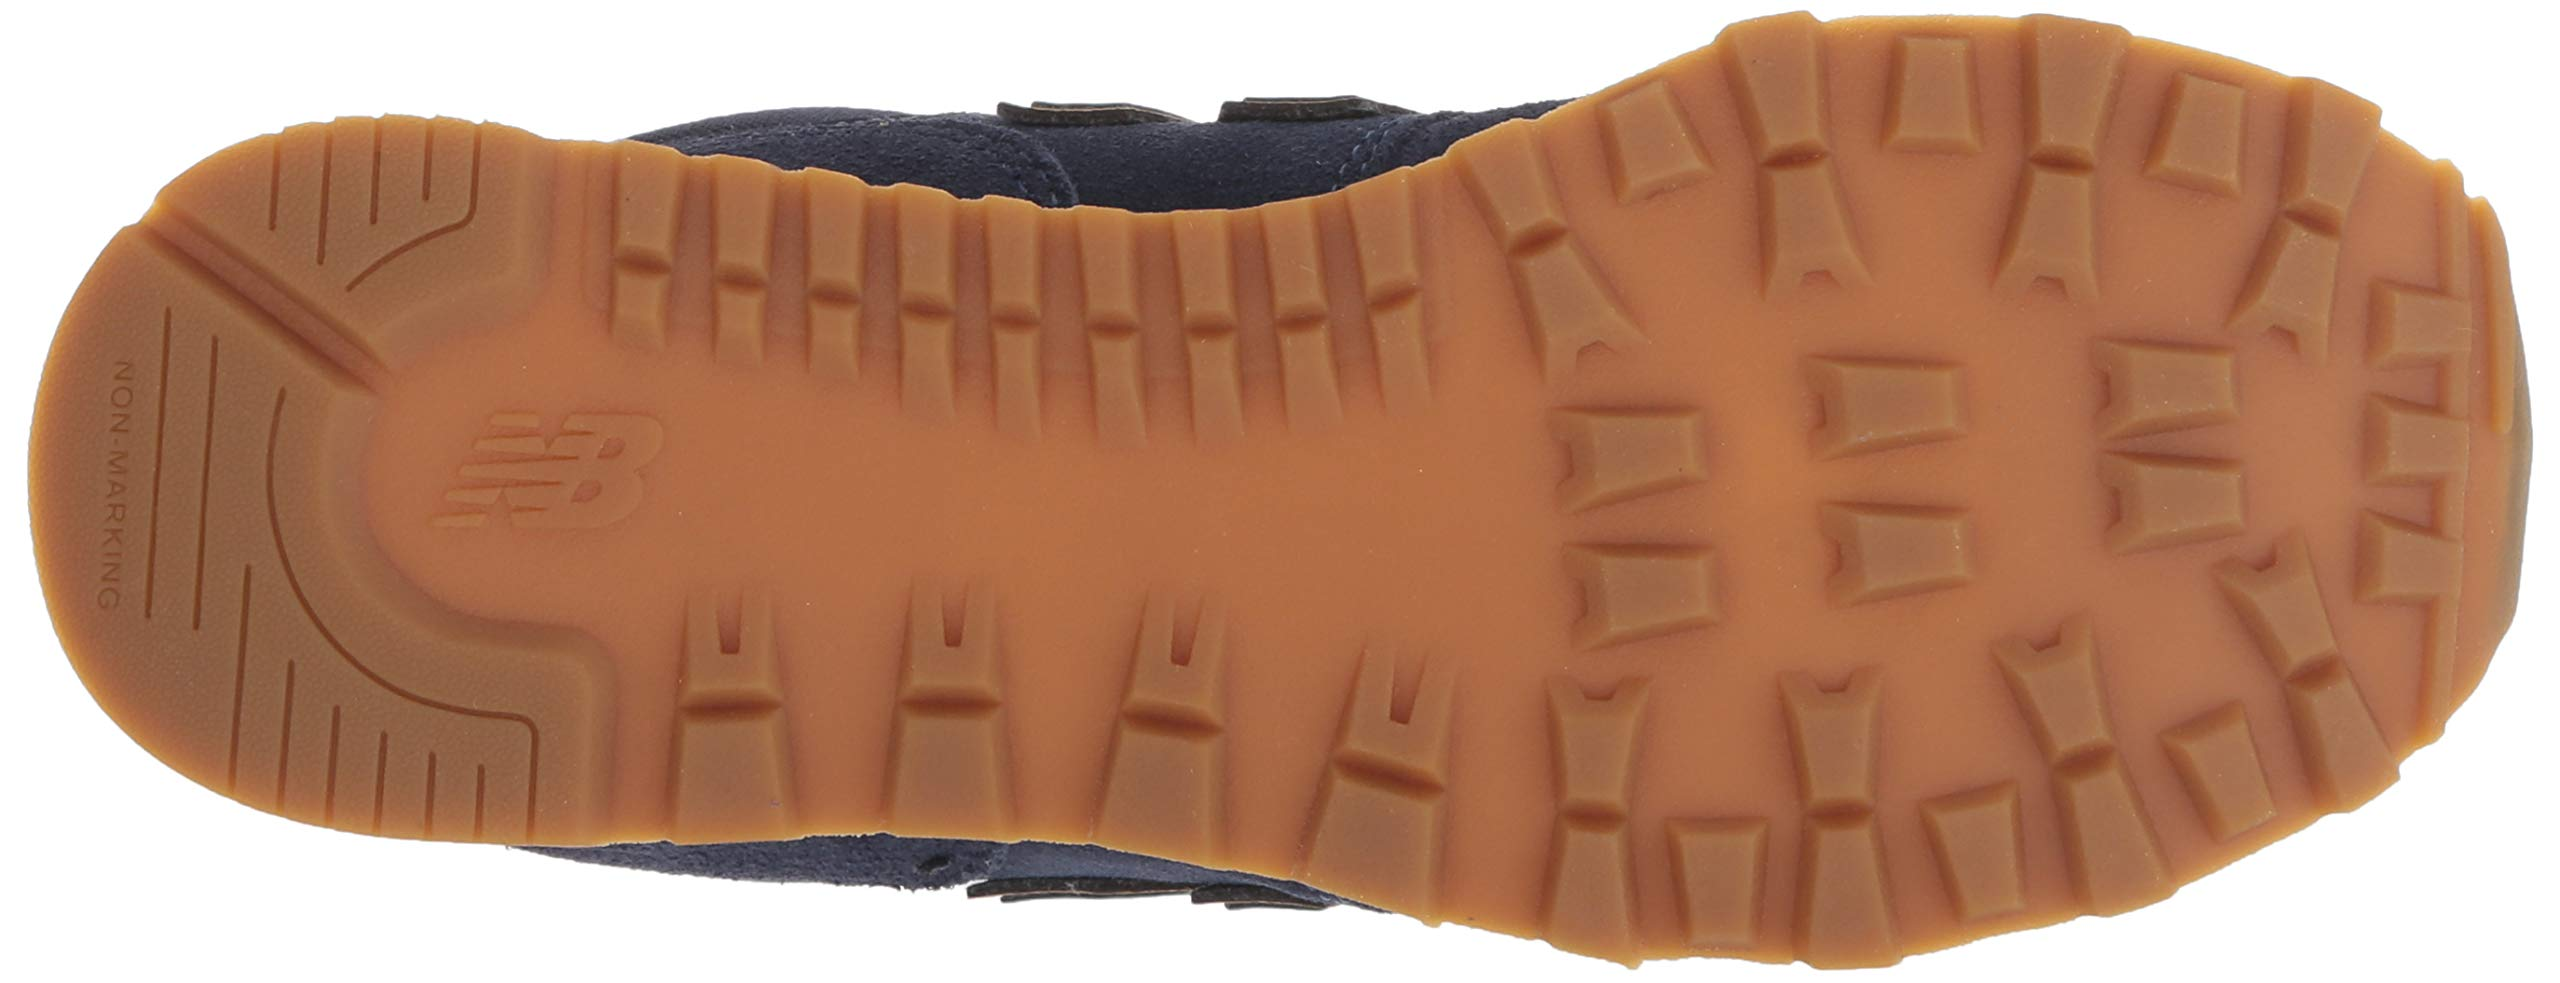 New Balance Boys' Iconic 574 Sneaker Pigment/Cadet 10 M US Toddler by New Balance (Image #3)